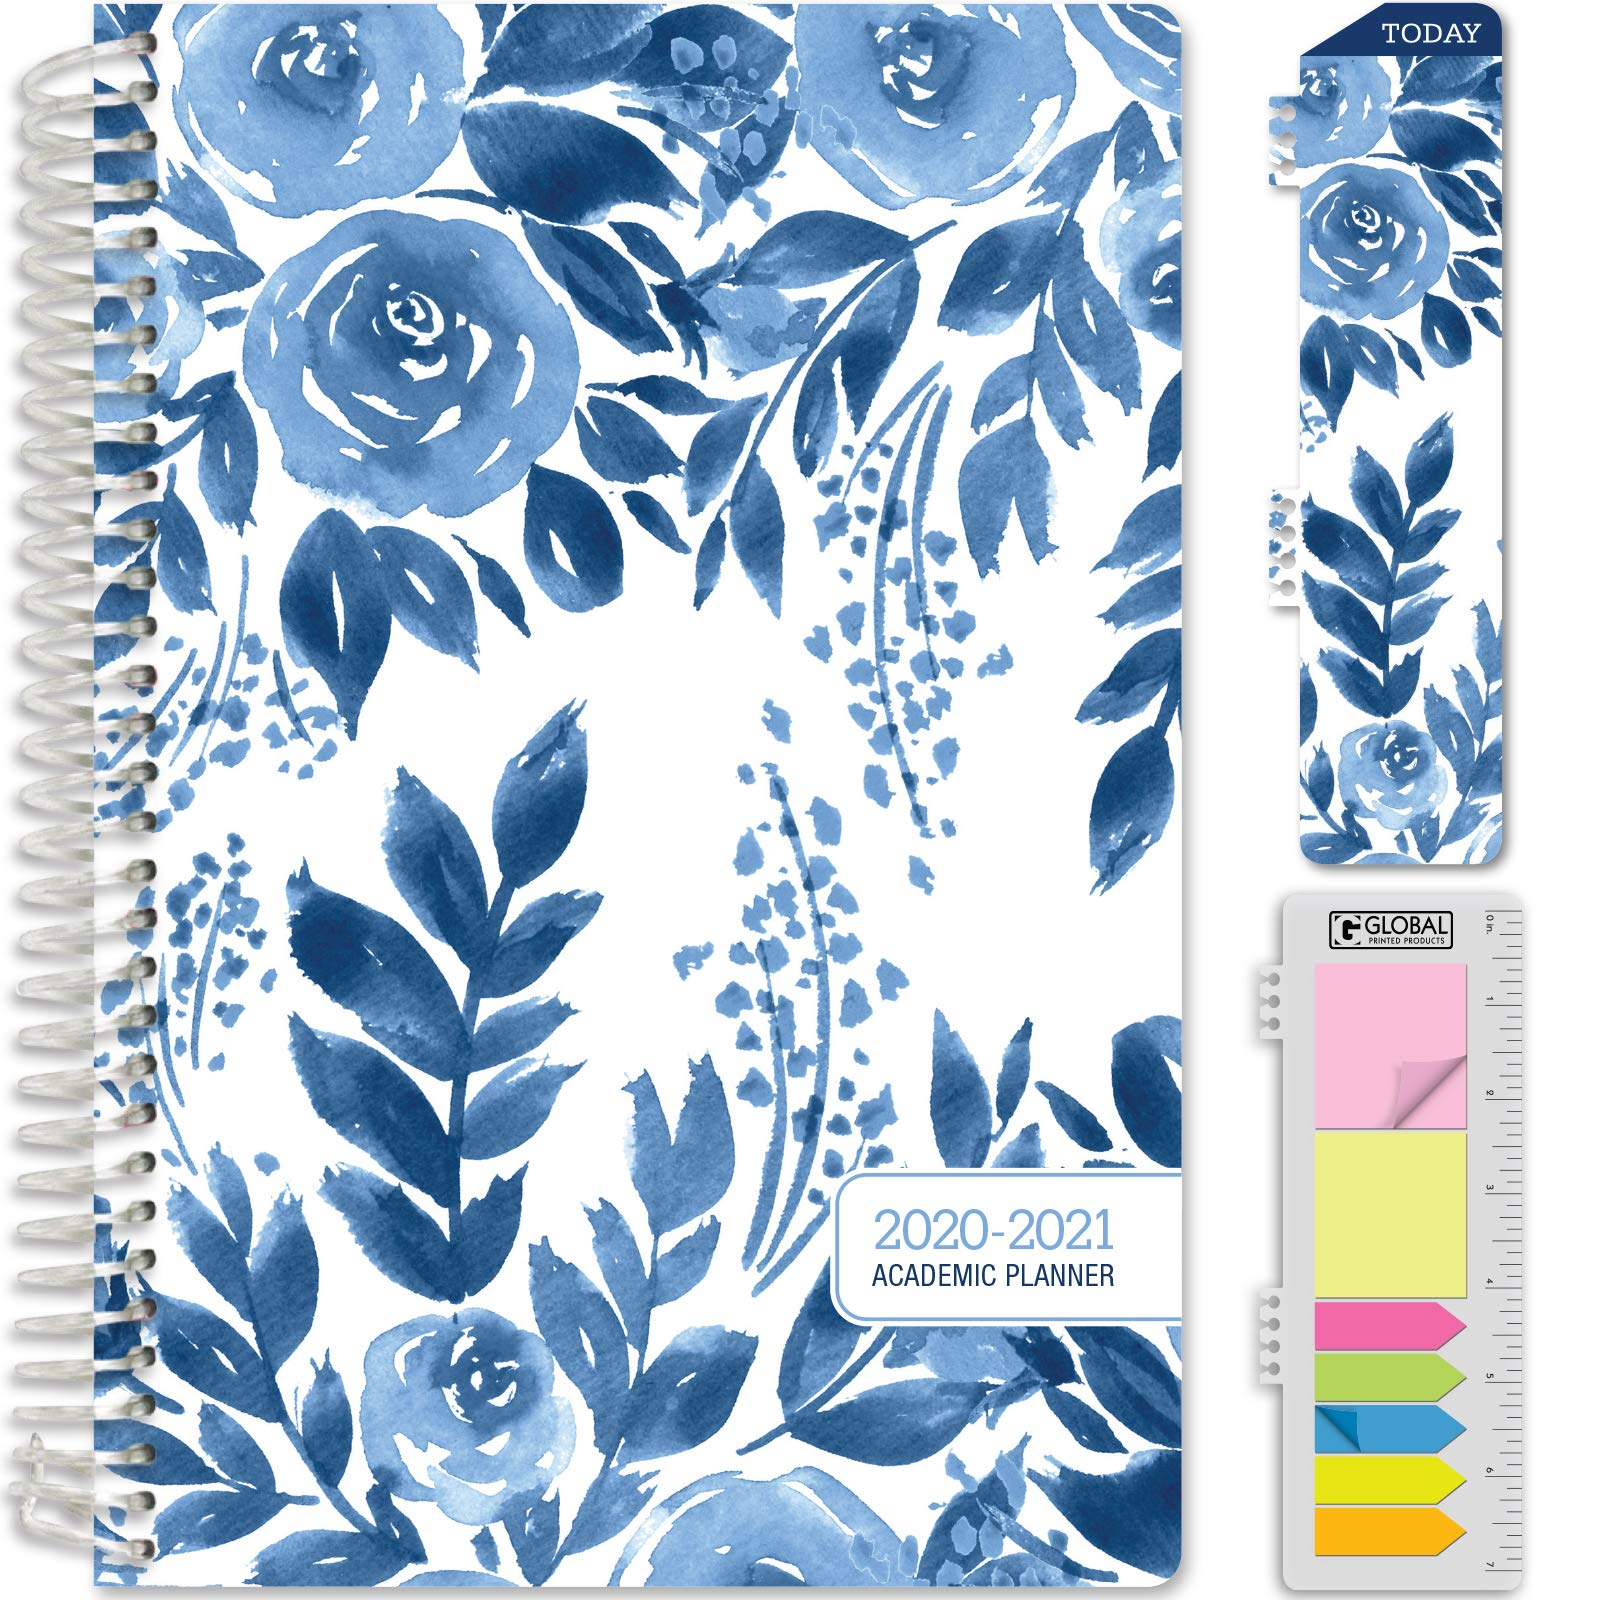 """HARDCOVER Academic Year 2020-2021 Planner: (June 2020 Through July 2021) 5.5""""x8"""" Daily Weekly Monthly Planner Yearly Agenda. Bonus Bookmark, Pocket Folder and Sticky Note Set (Blue Bloom)"""